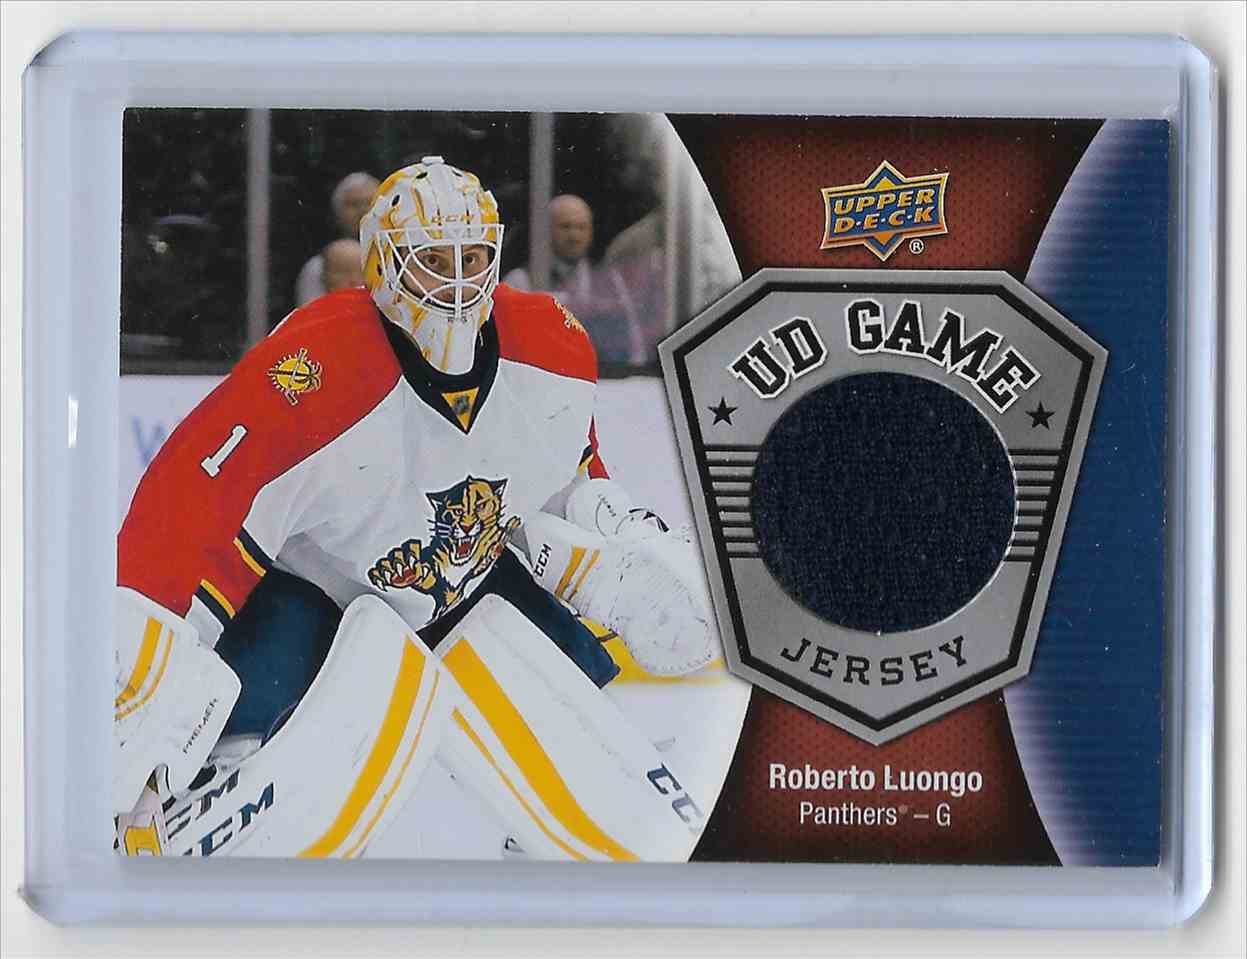 2016-17 Upper Deck Roberto Luongo #GJ-RL card front image